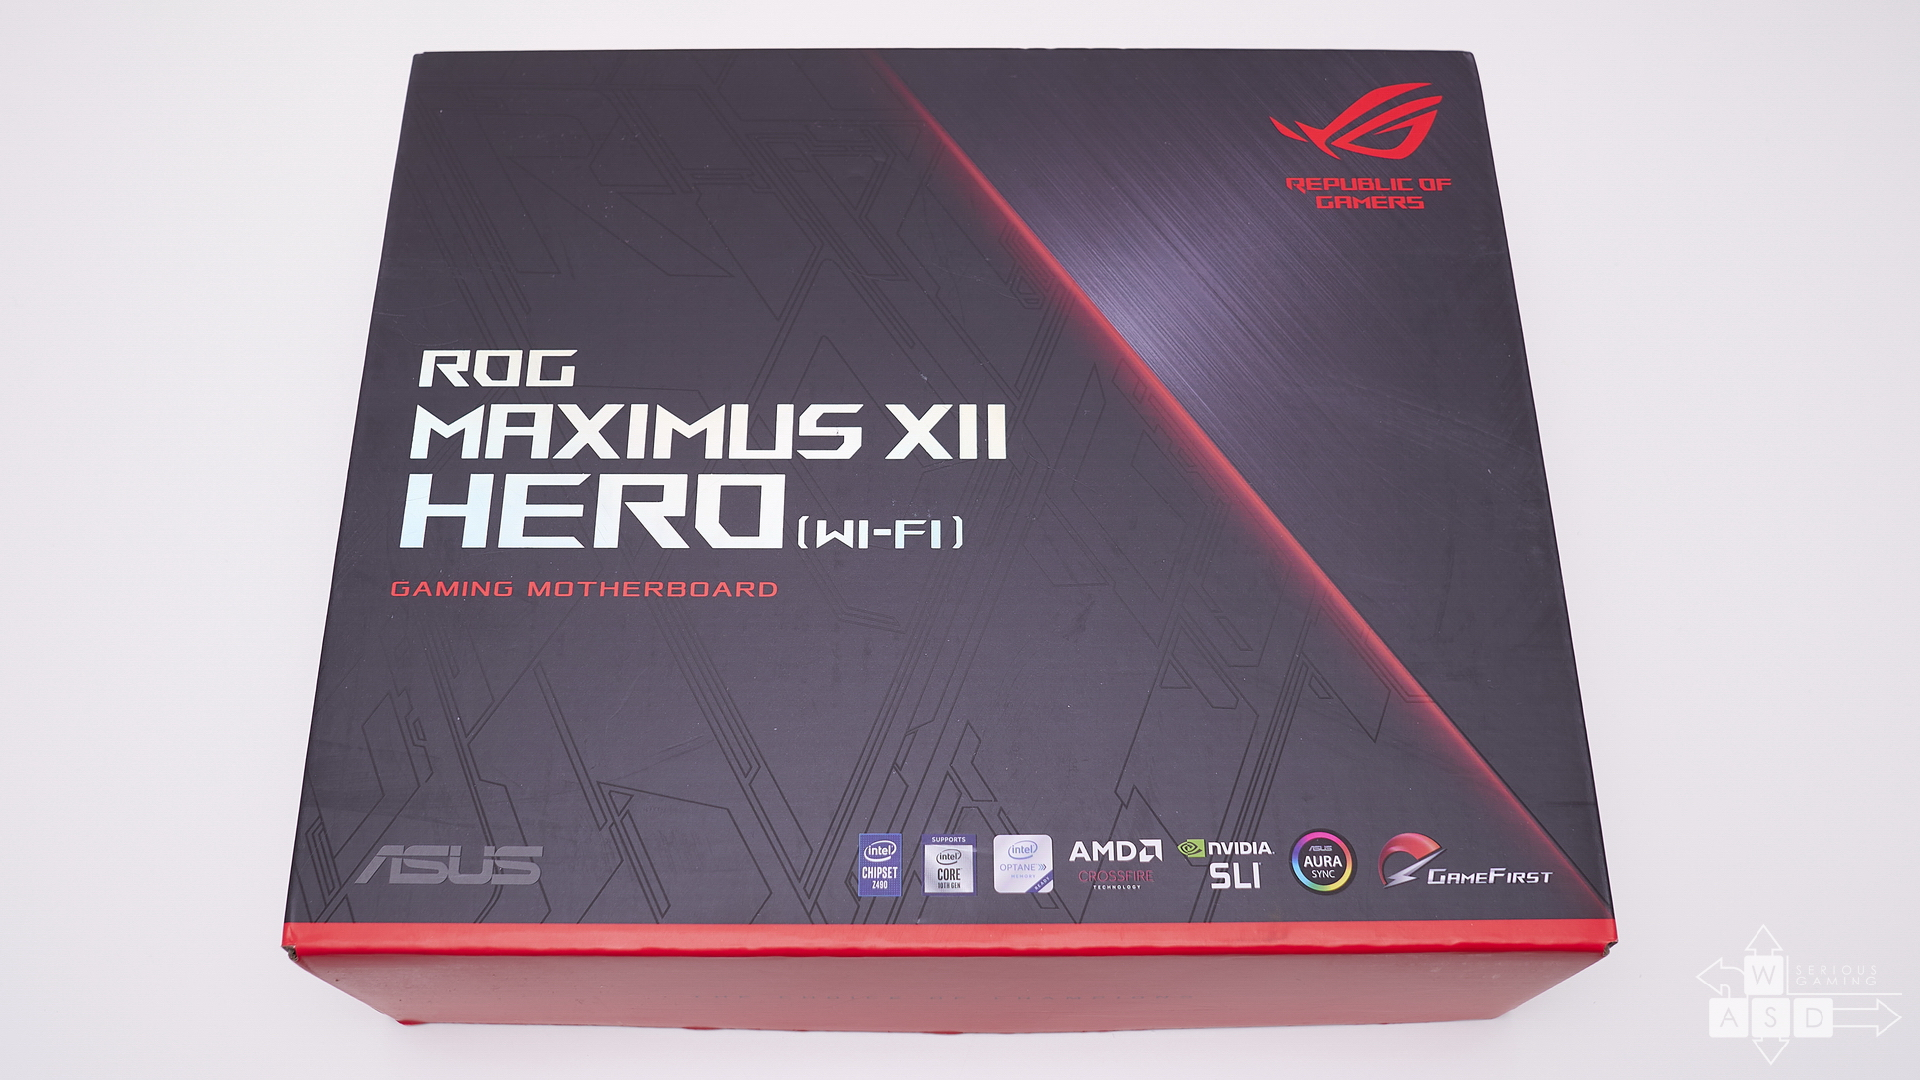 Asus ROG Maximus XII Hero review | WASD